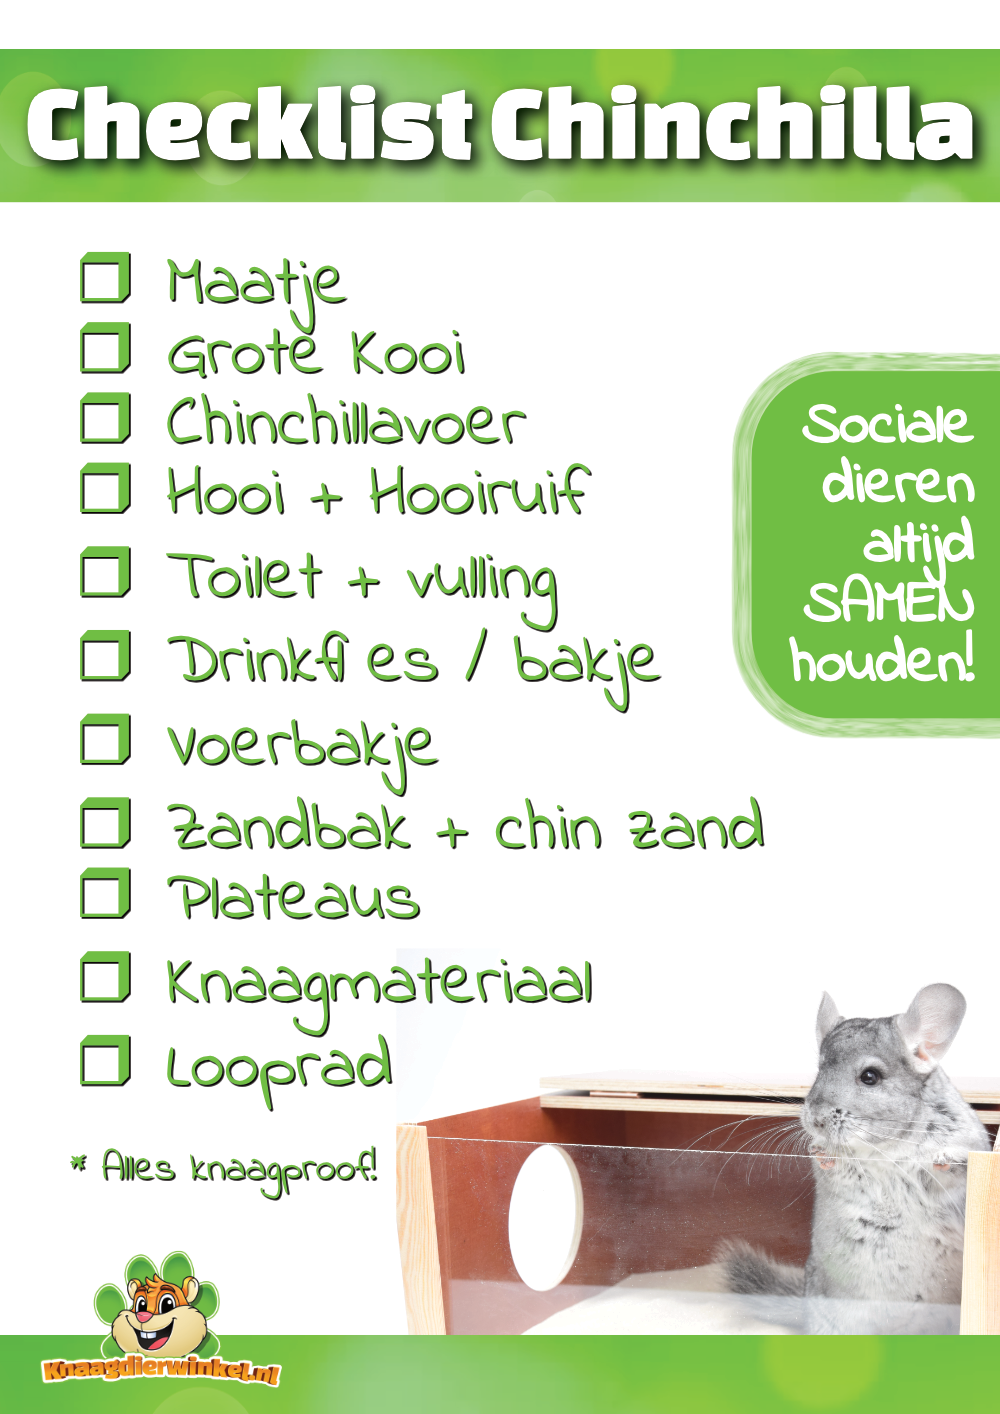 Checkliste Chinchilla